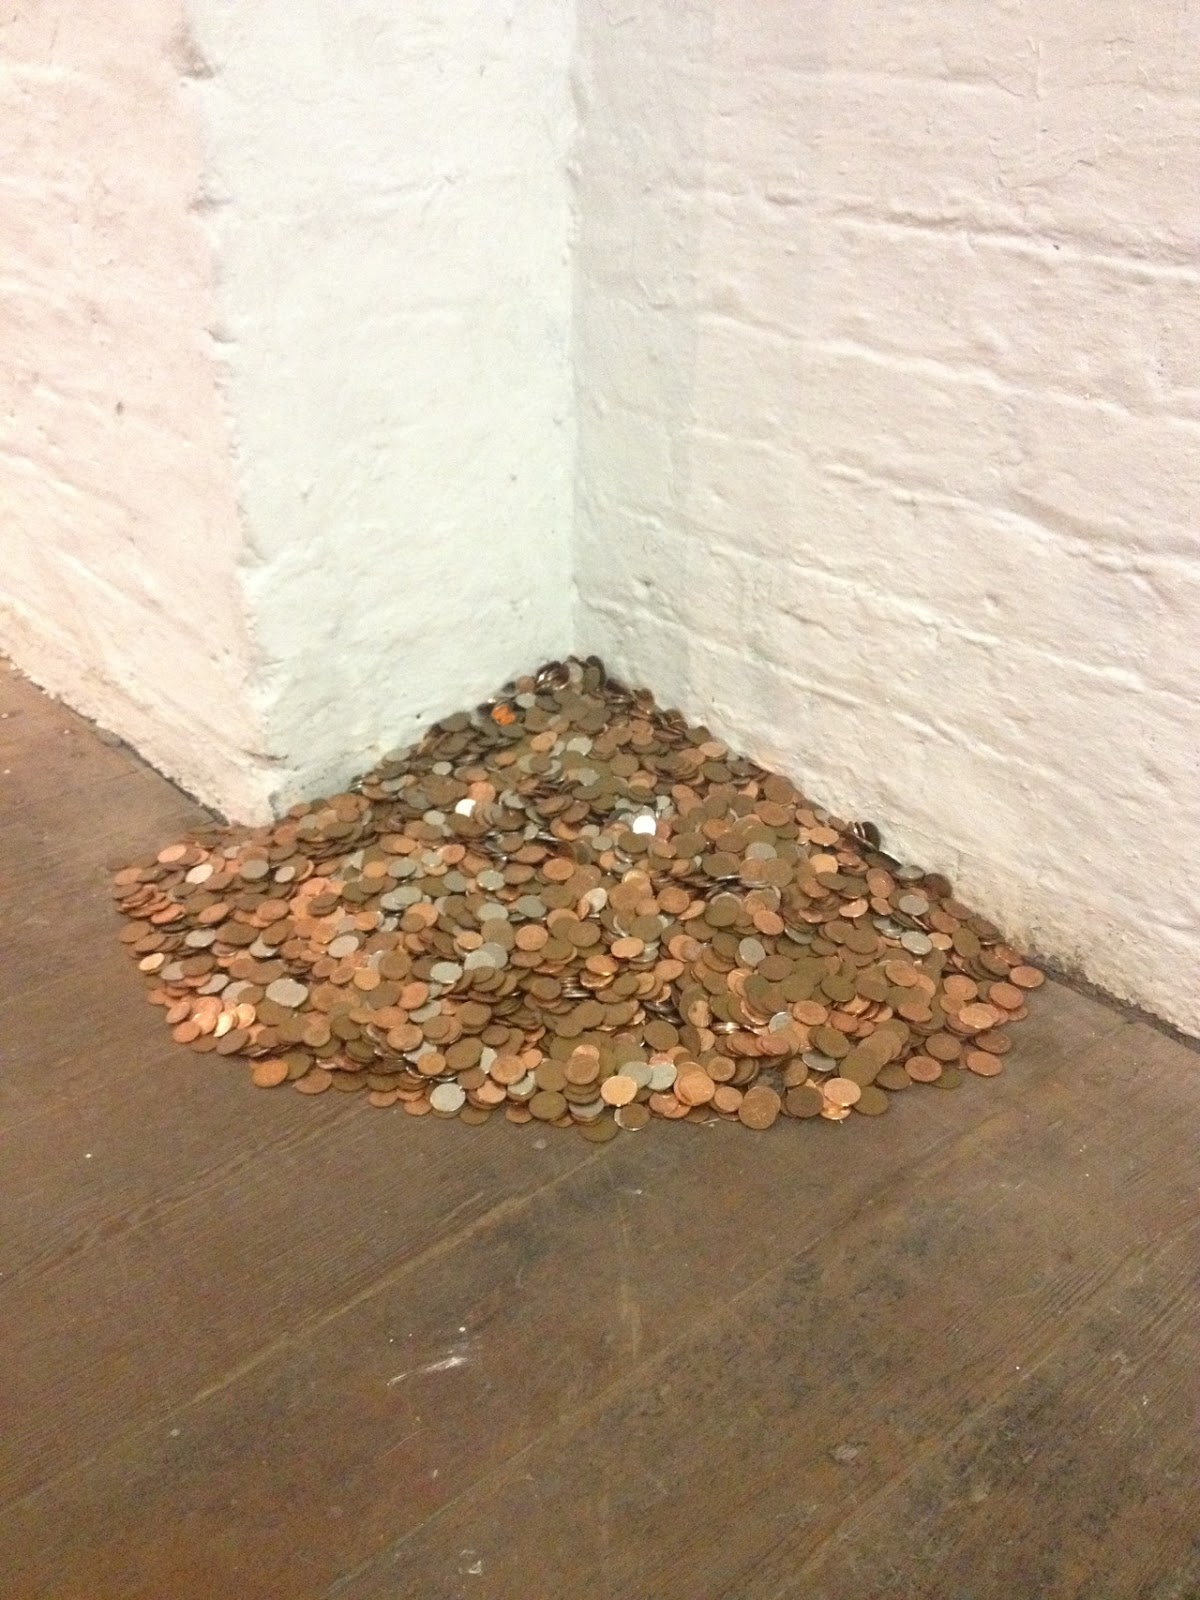 £306 (2016) The piece presents 306 pounds in silver and copper coins, the average amount spent annually by women on sanitary items (including underwear due to spillages) and pain relief for periods. Sanitary items are currently regarded as 'luxury'...